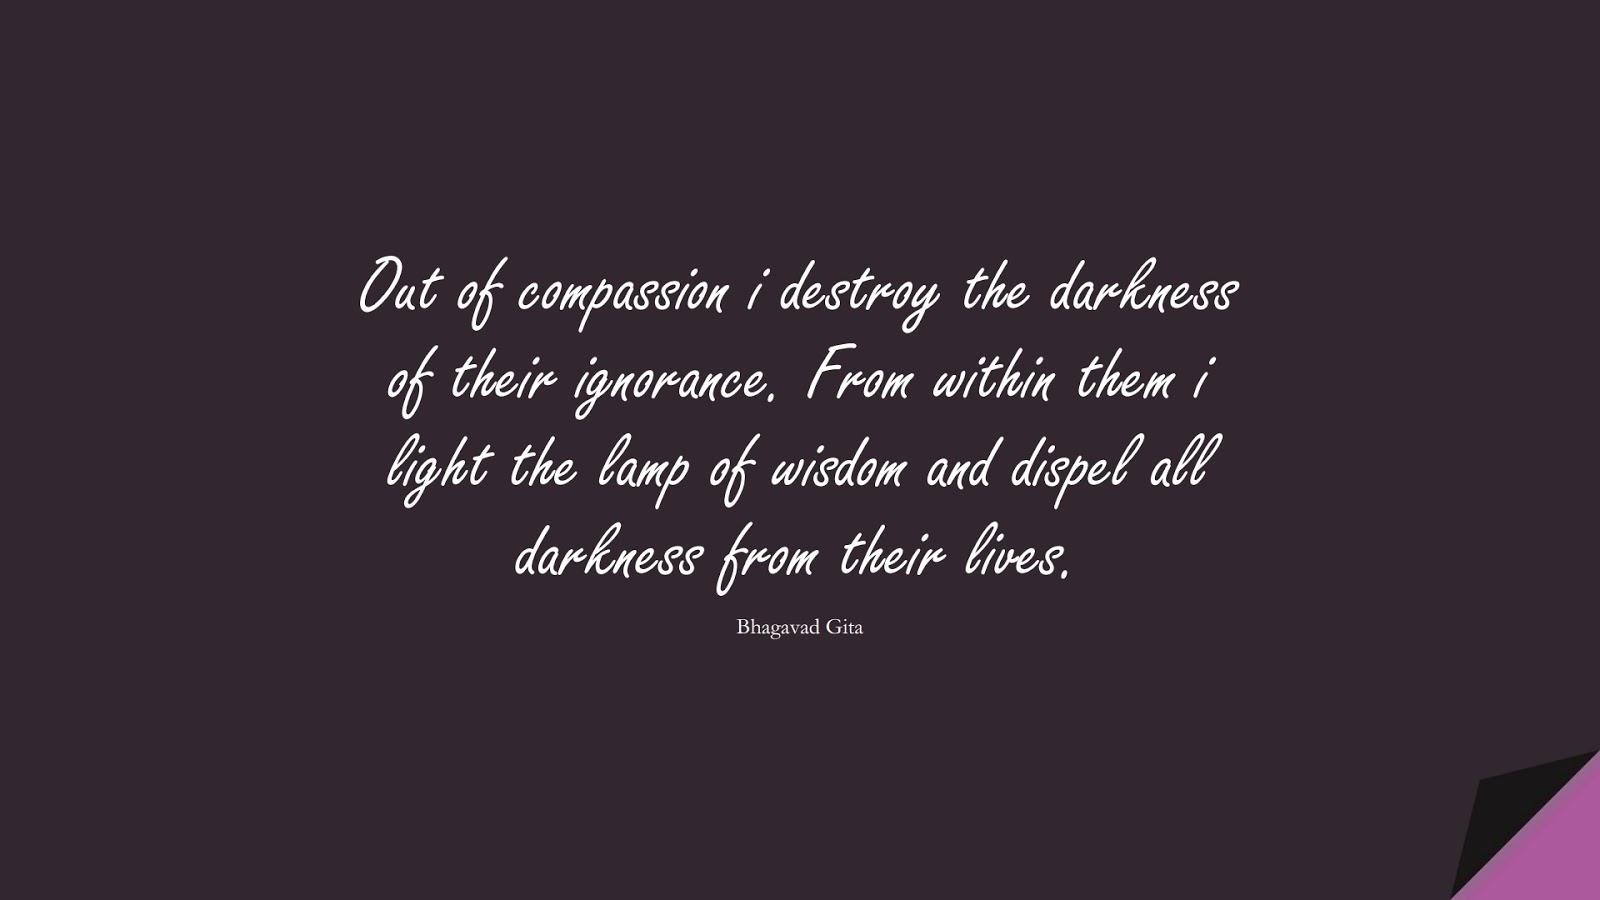 Out of compassion i destroy the darkness of their ignorance. From within them i light the lamp of wisdom and dispel all darkness from their lives. (Bhagavad Gita);  #WordsofWisdom